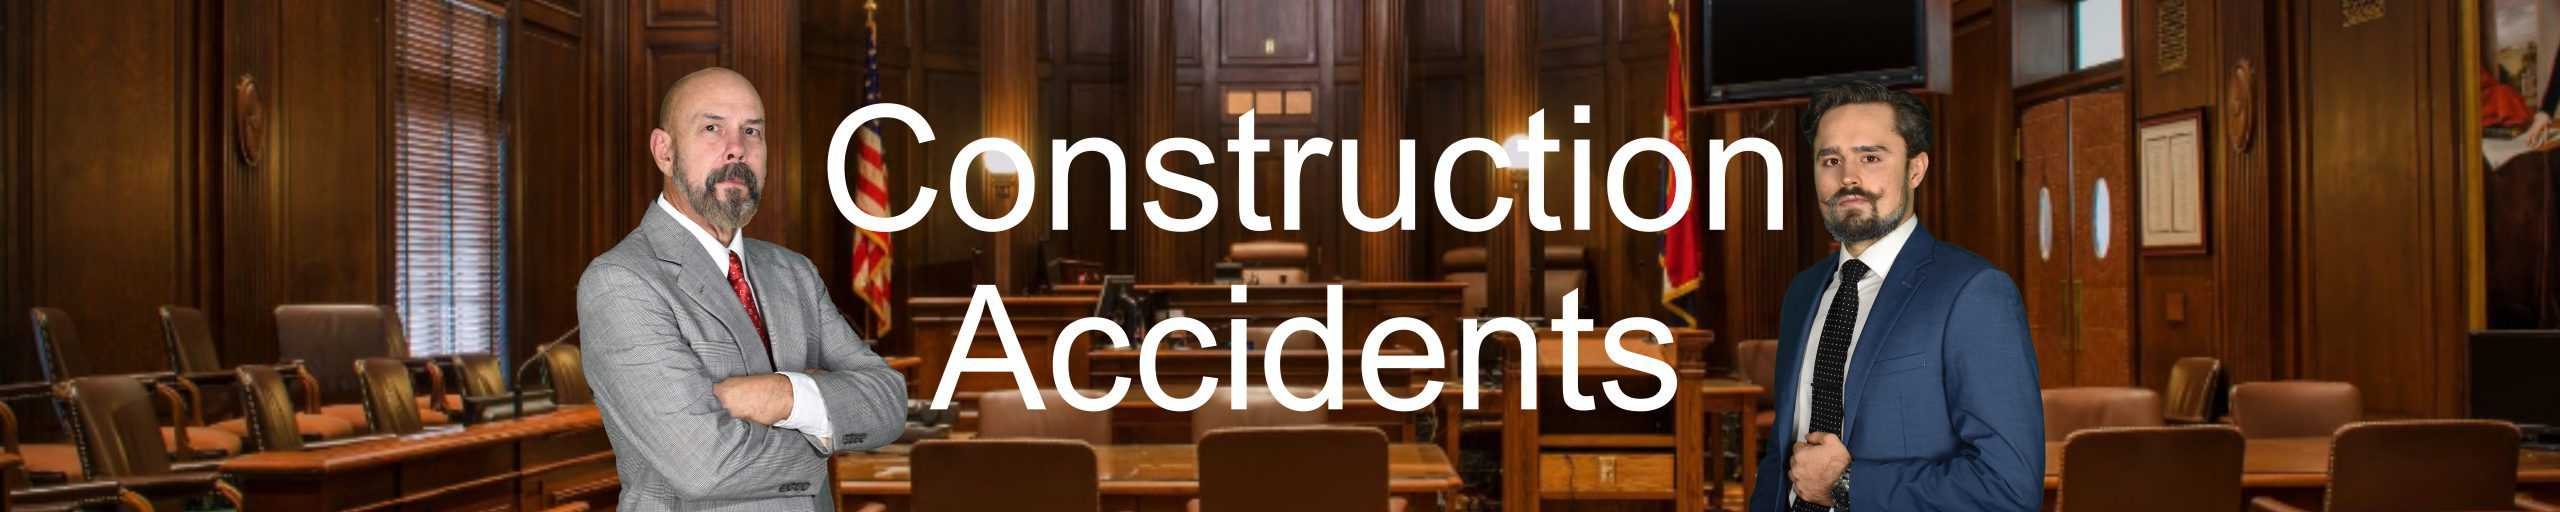 Construction-Accidents-Personal-Injury-Attorney-Lawyer-Hurt-Broken-Rear-End-Money-Settlement-Hospital-ER-Damage-Insurance-Company